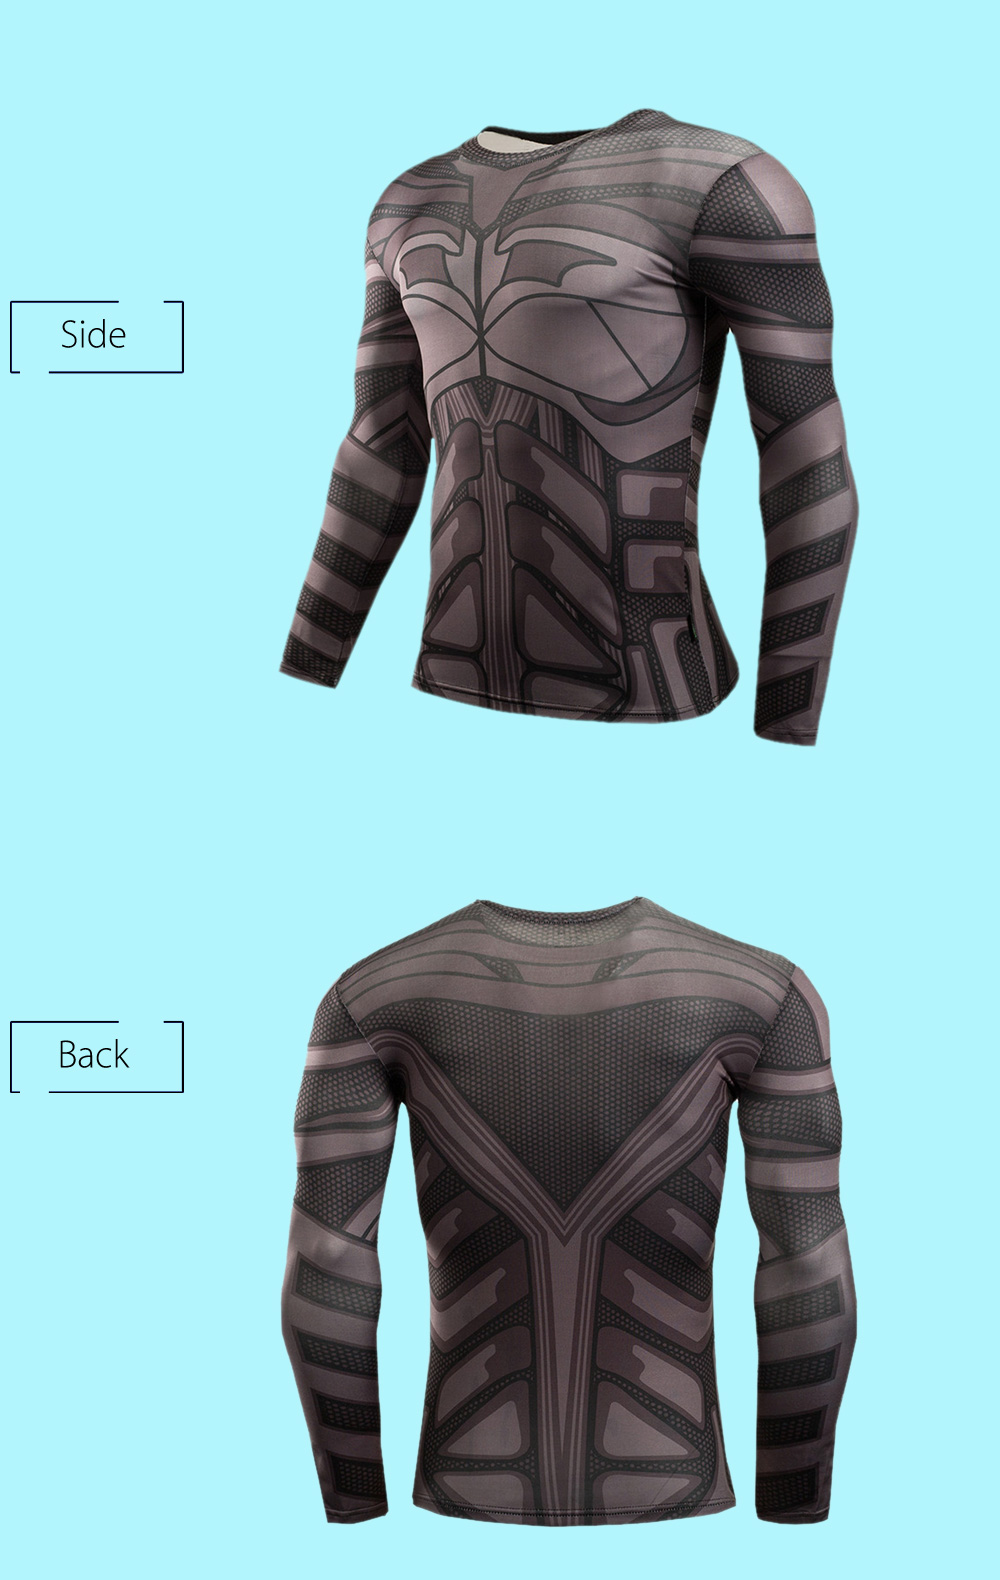 3D Print Classic Cartoon Figure Tight Fit Long Sleeves T Shirt Fitness Tops